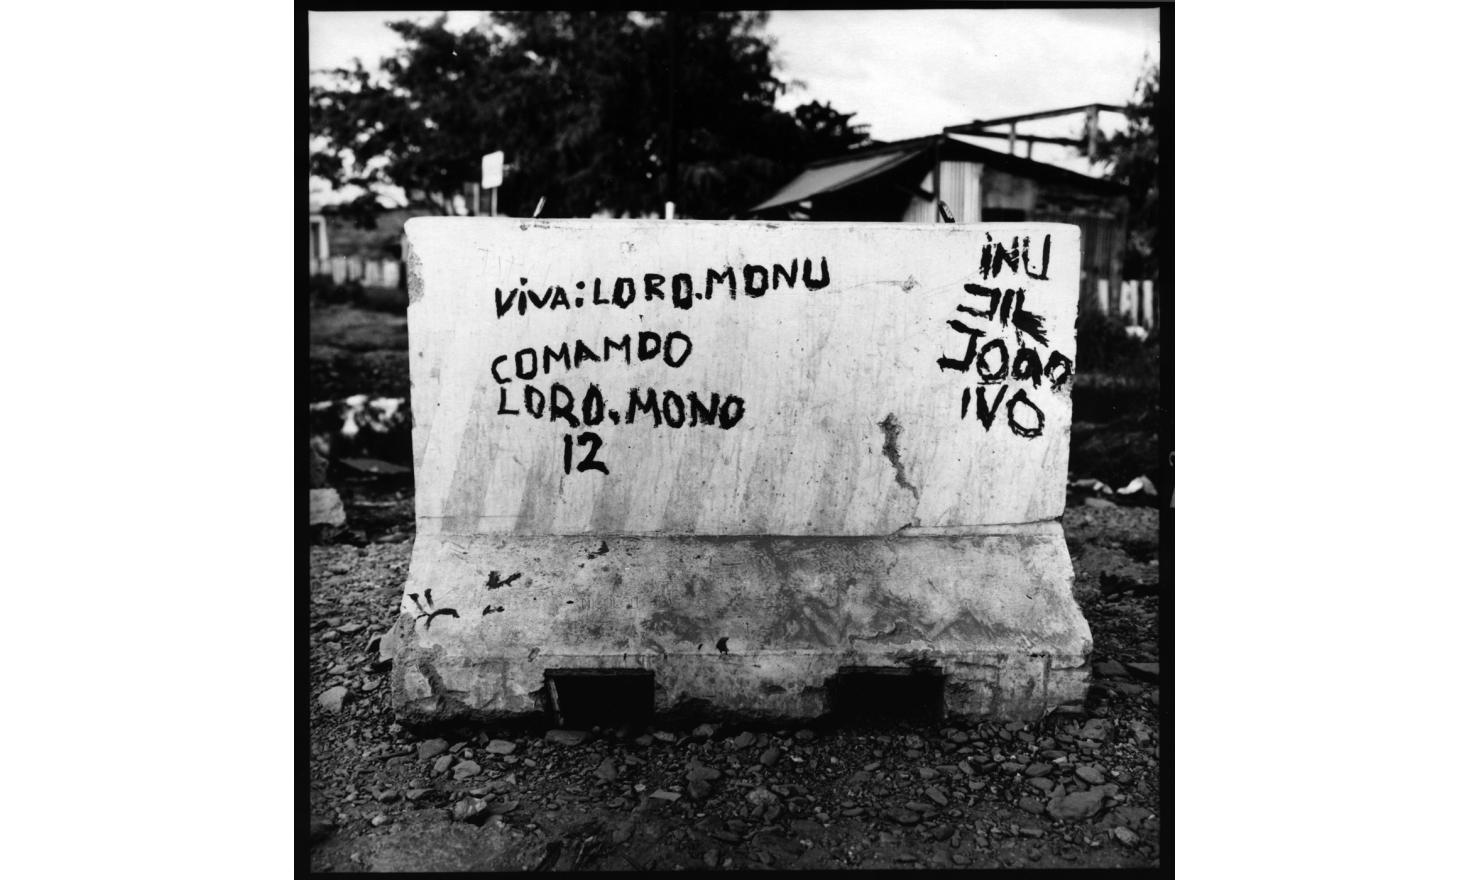 Loromonu tagg ie. Westerners in the streets of Dili, June 2006